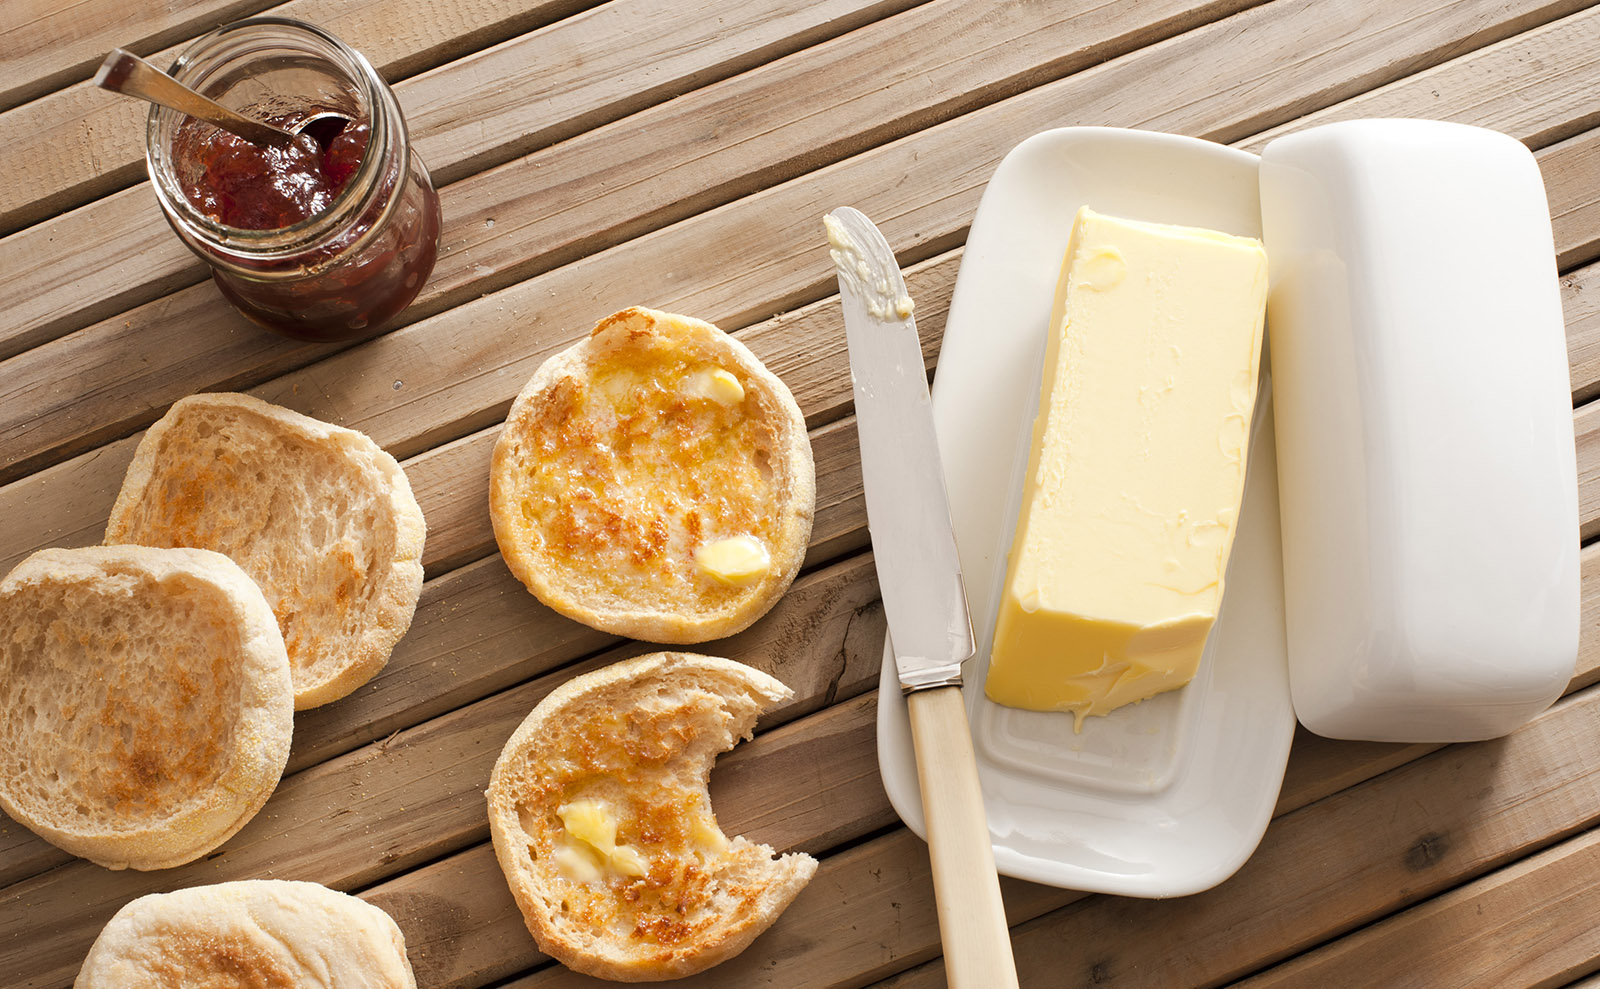 buttered english muffins on a wooden table